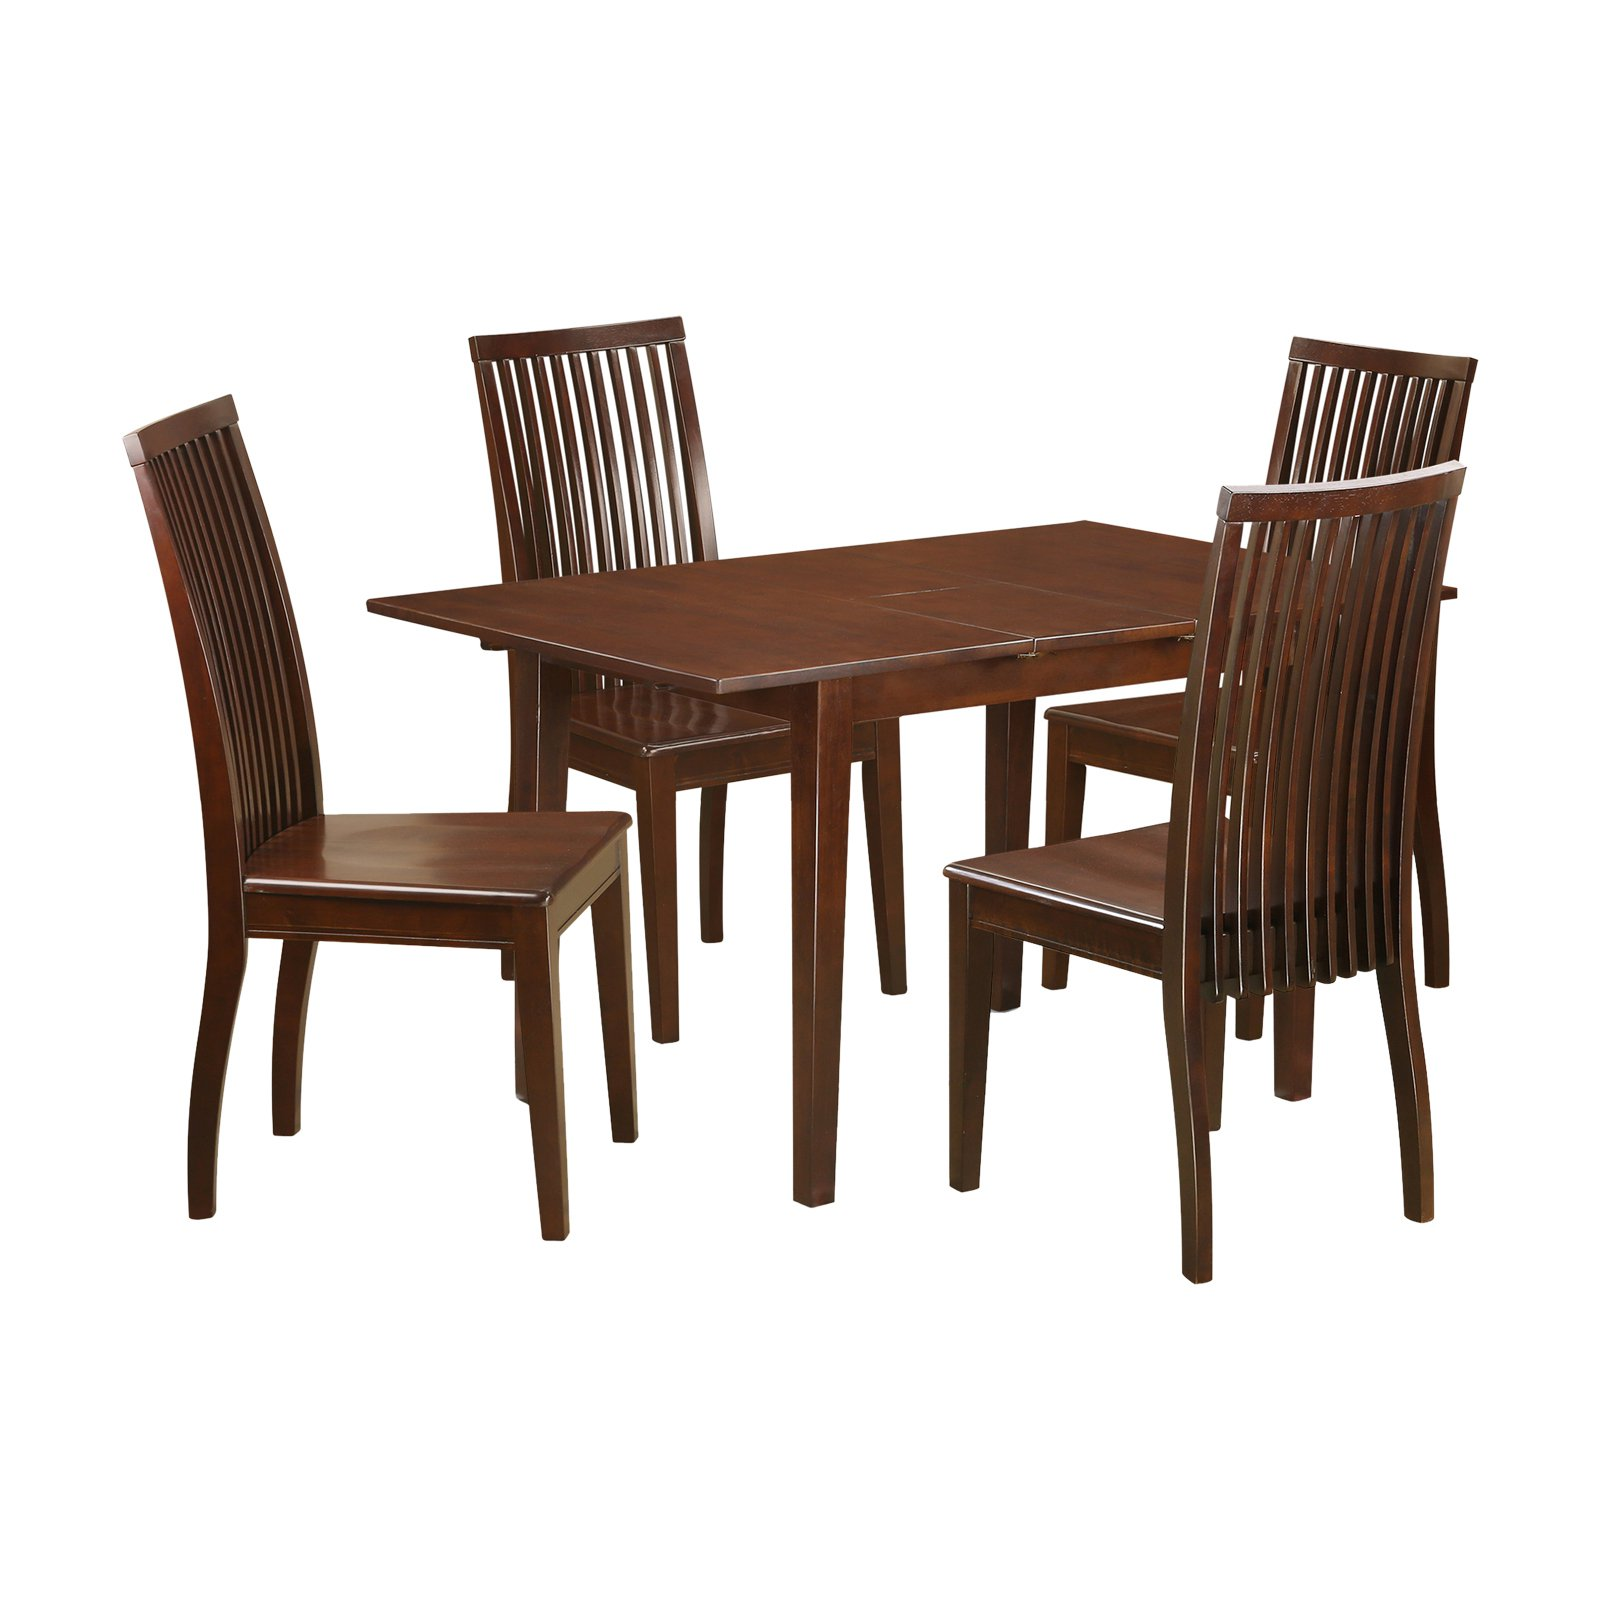 East West Furniture 5 Piece Norfolk Dining Table Set with Wood Seat